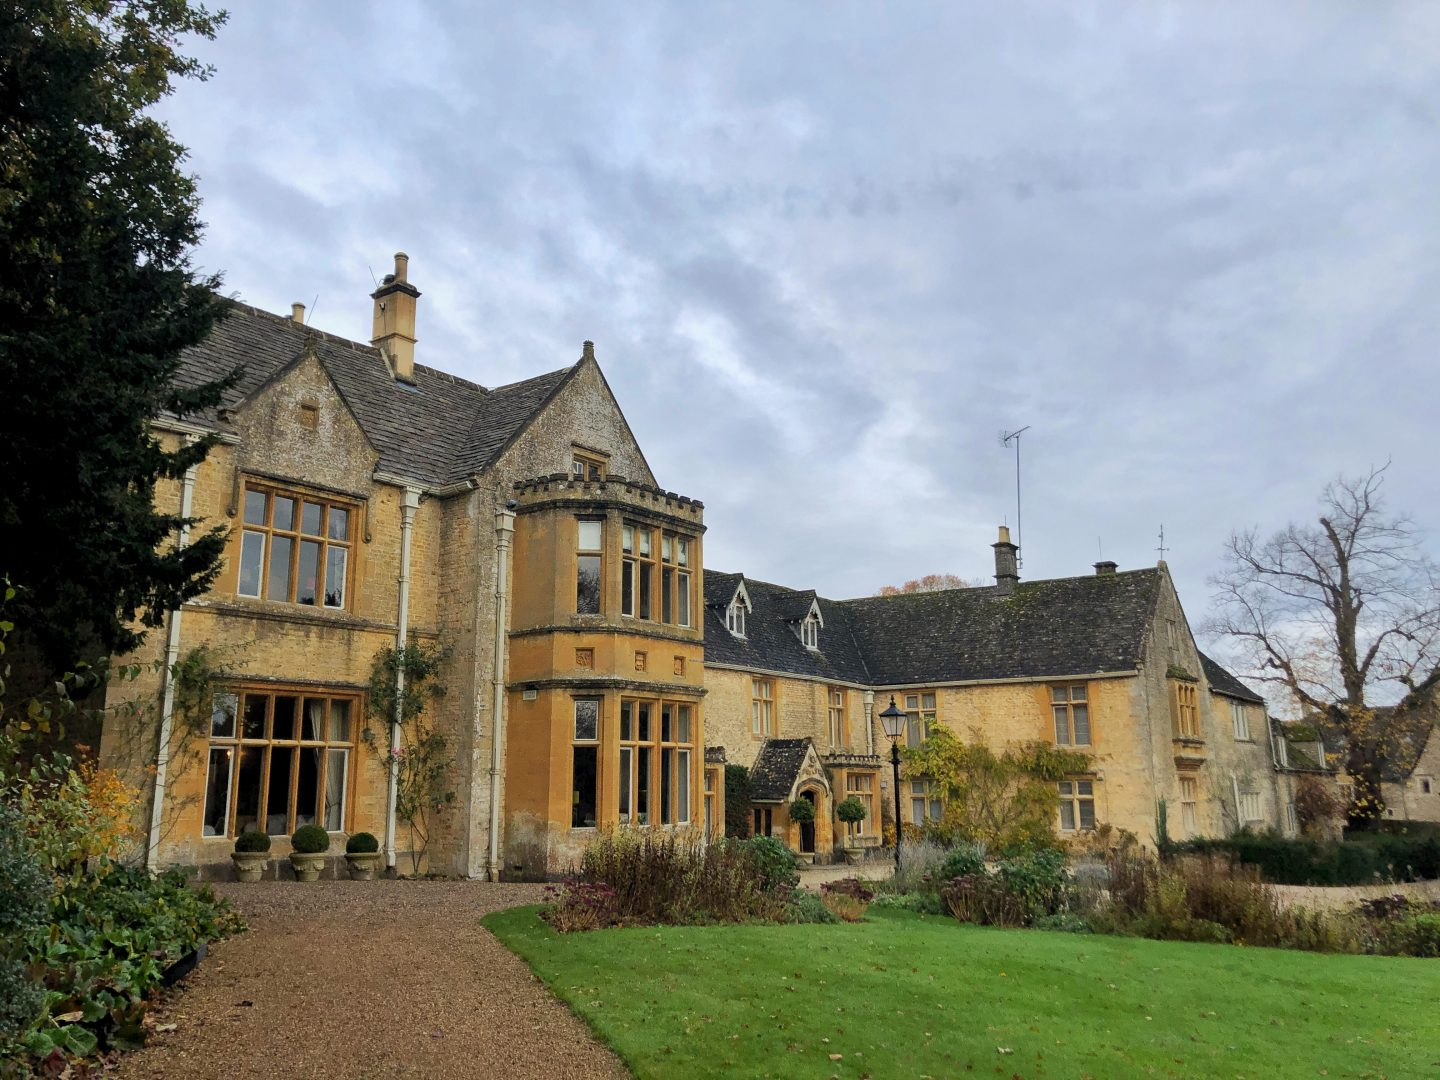 A view from the front of the Lords of the Manor Hotel in Upper Slaughter. The building is a beautiful butter yellow stone with turrets and mullioned windows everywhere. The sky is grey but that doesn't detract from the grandeur of the place.